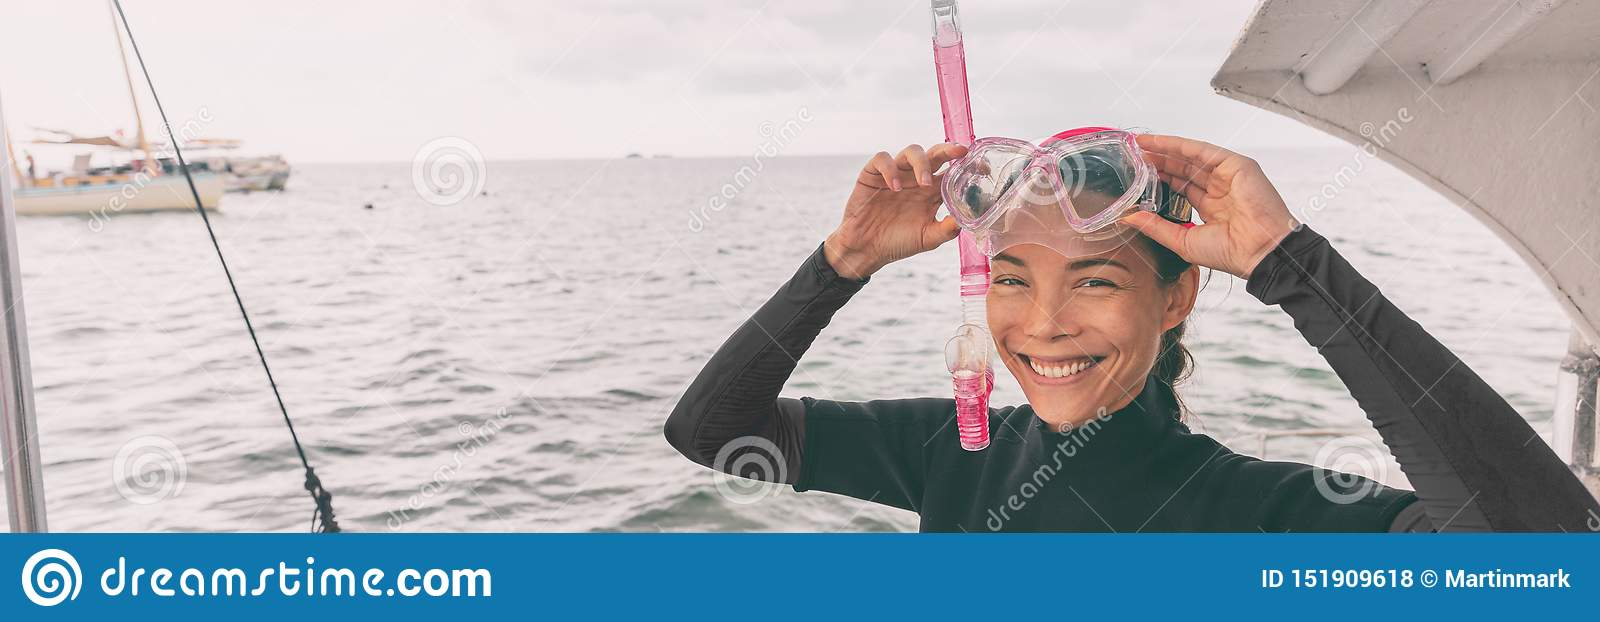 Snorkel mask Asian woman tourist getting ready for snorkeling activity tour from boat banner